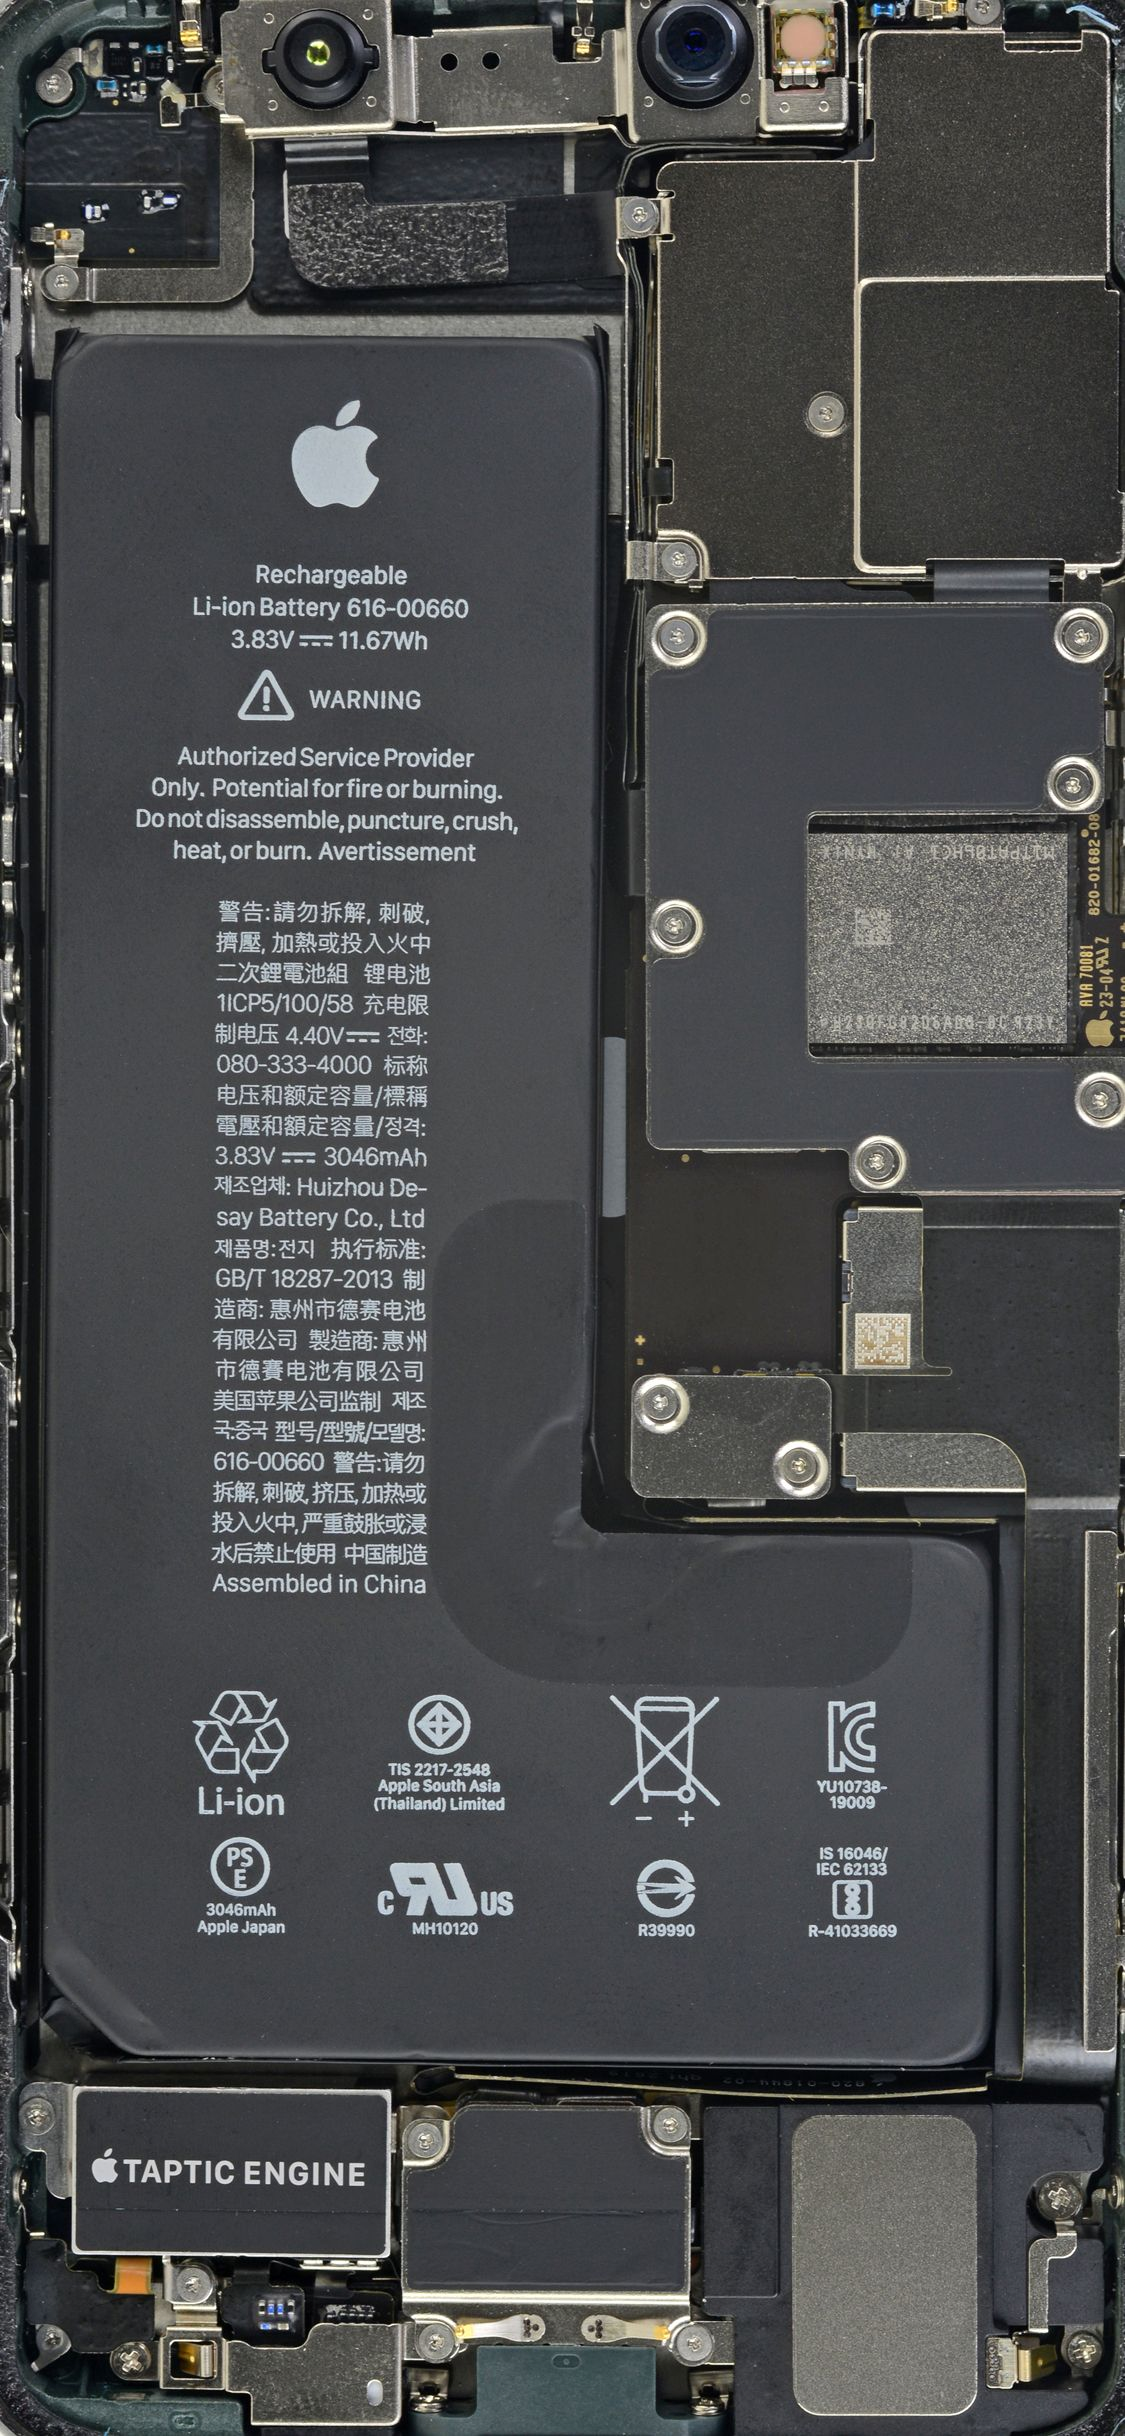 iPhone 11, 11 Pro, and 11 Pro Max Teardown Wallpapers in